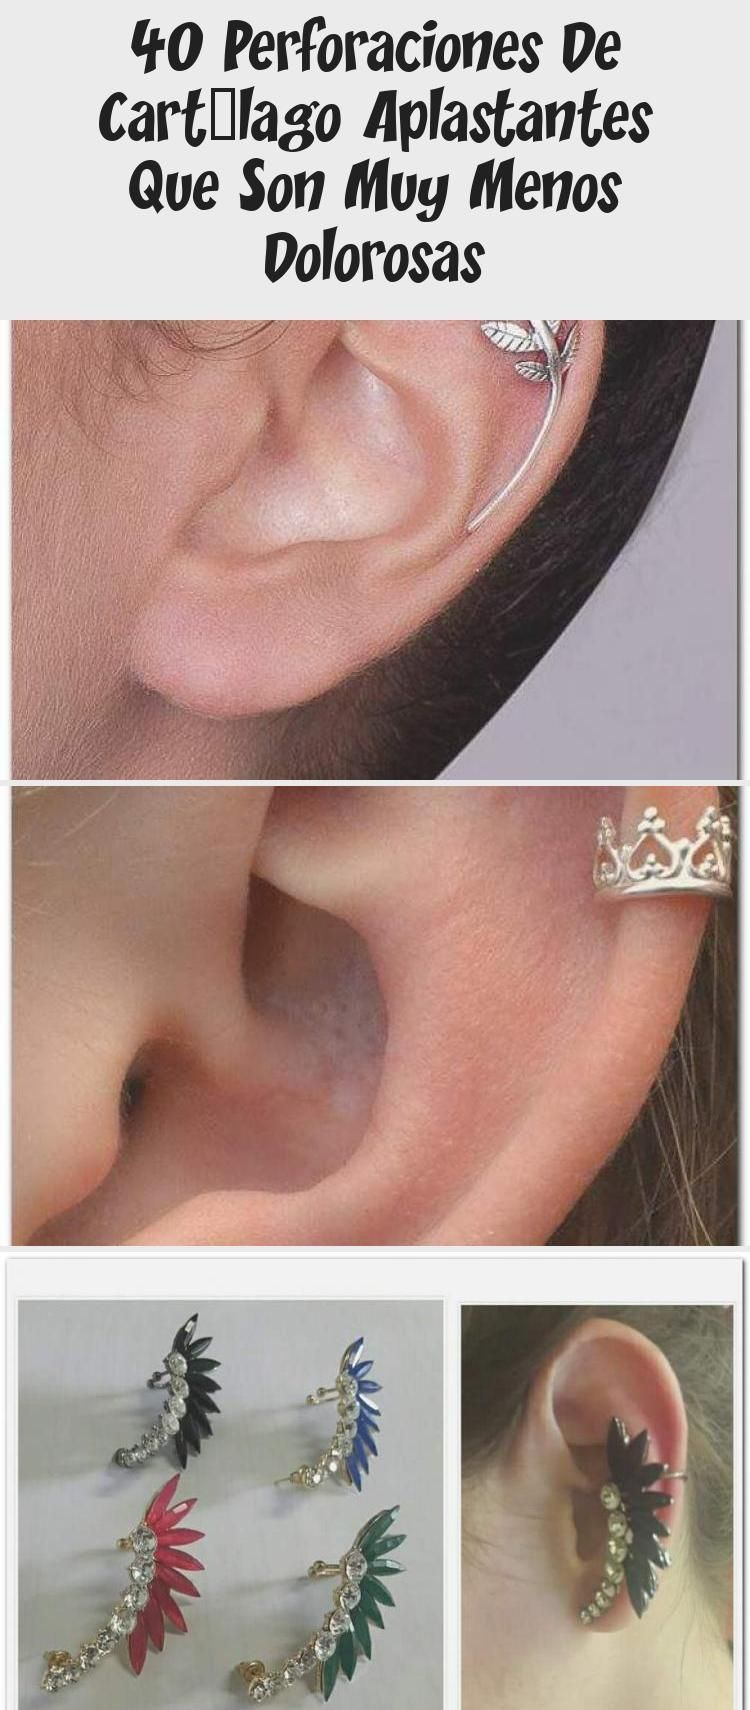 40 crushing cartilage perforations that are very less